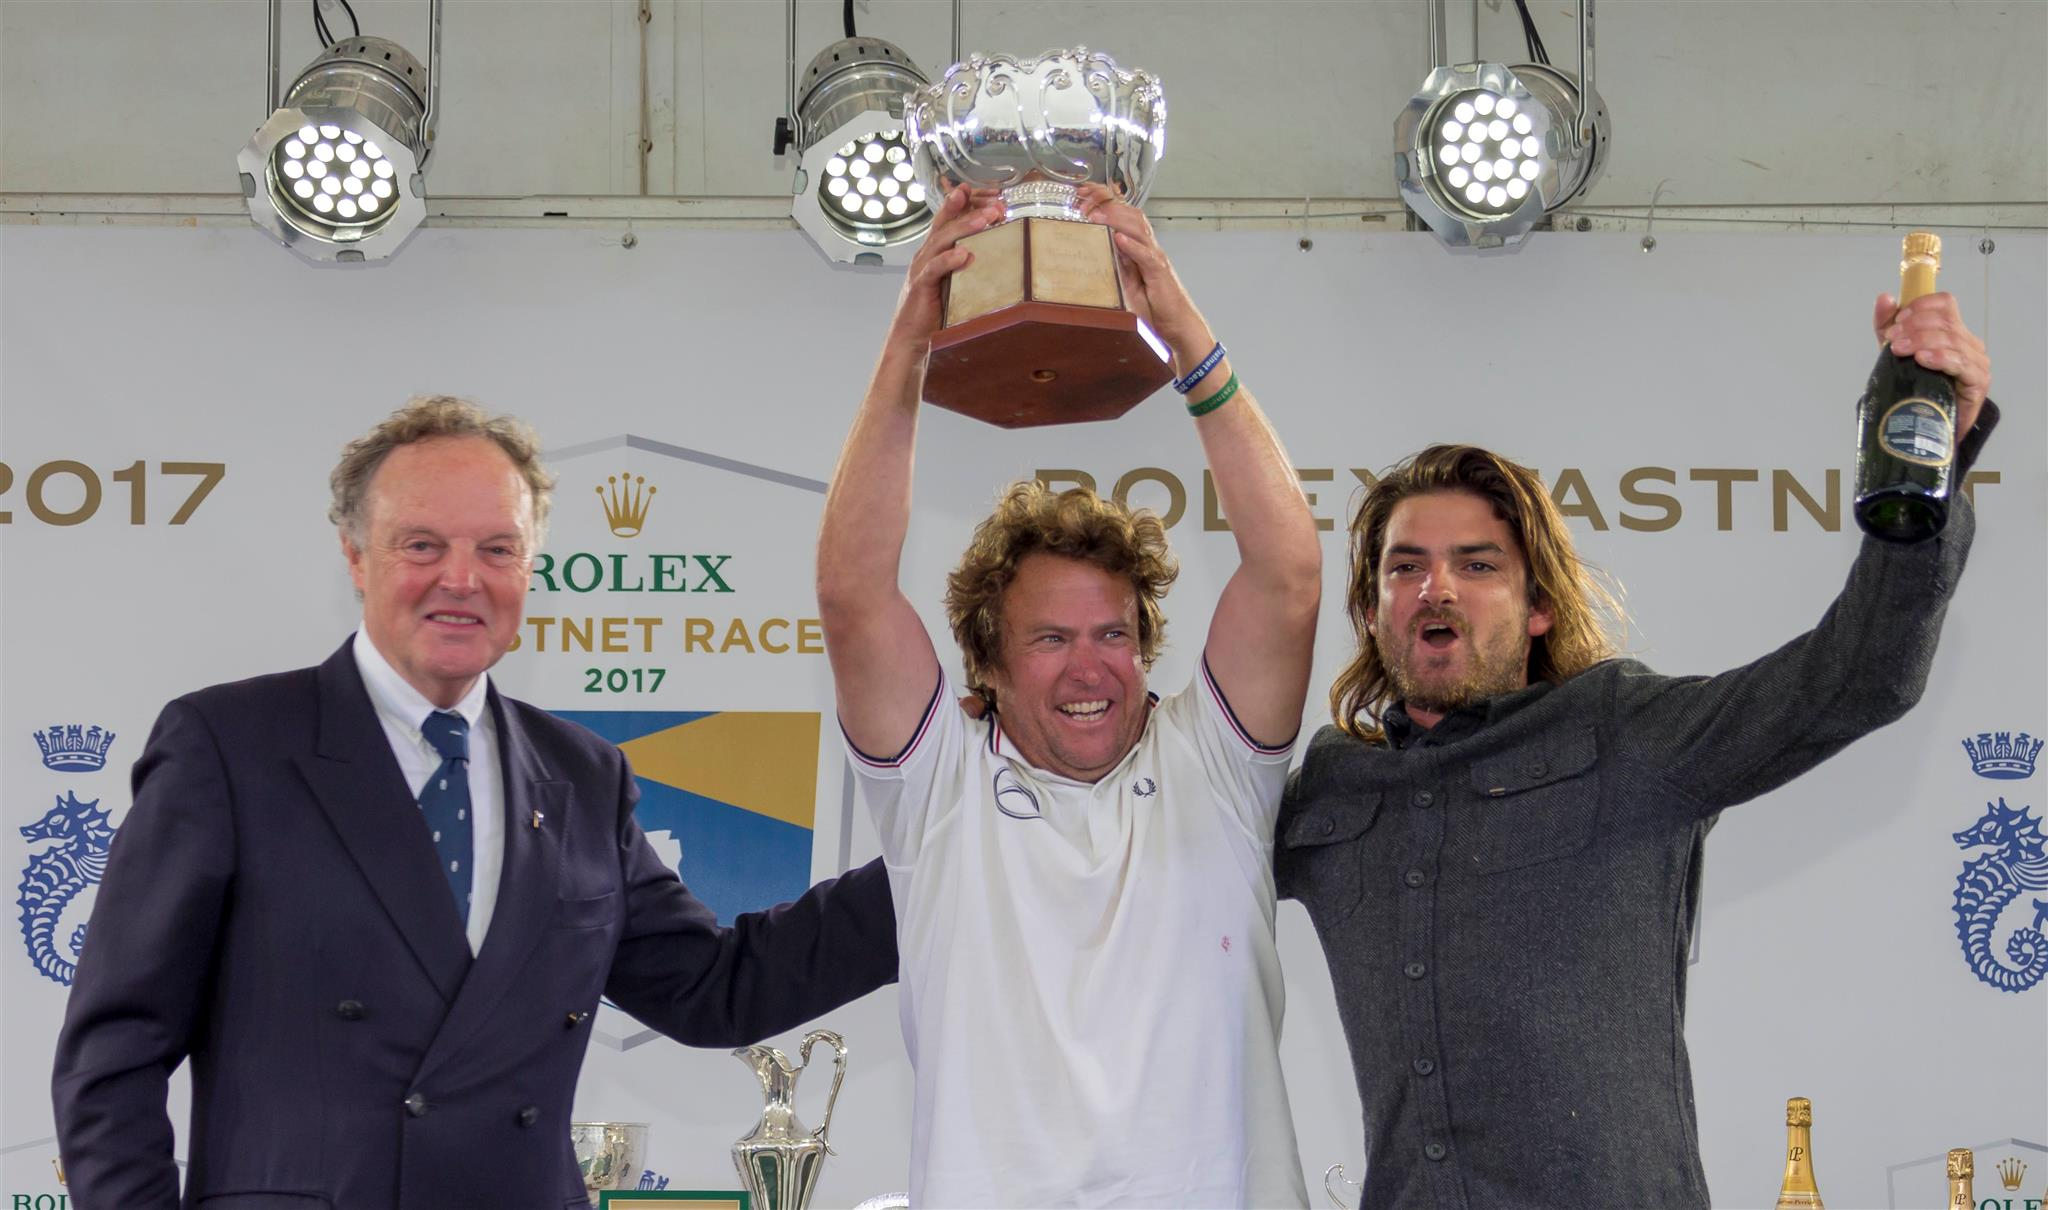 The team from Italy and Chile onboard Swan 57, Equinoccio, celebrate their awarding of the Coates Schofield Trophy. Credit: ROLEX/Carlo Borlenghi